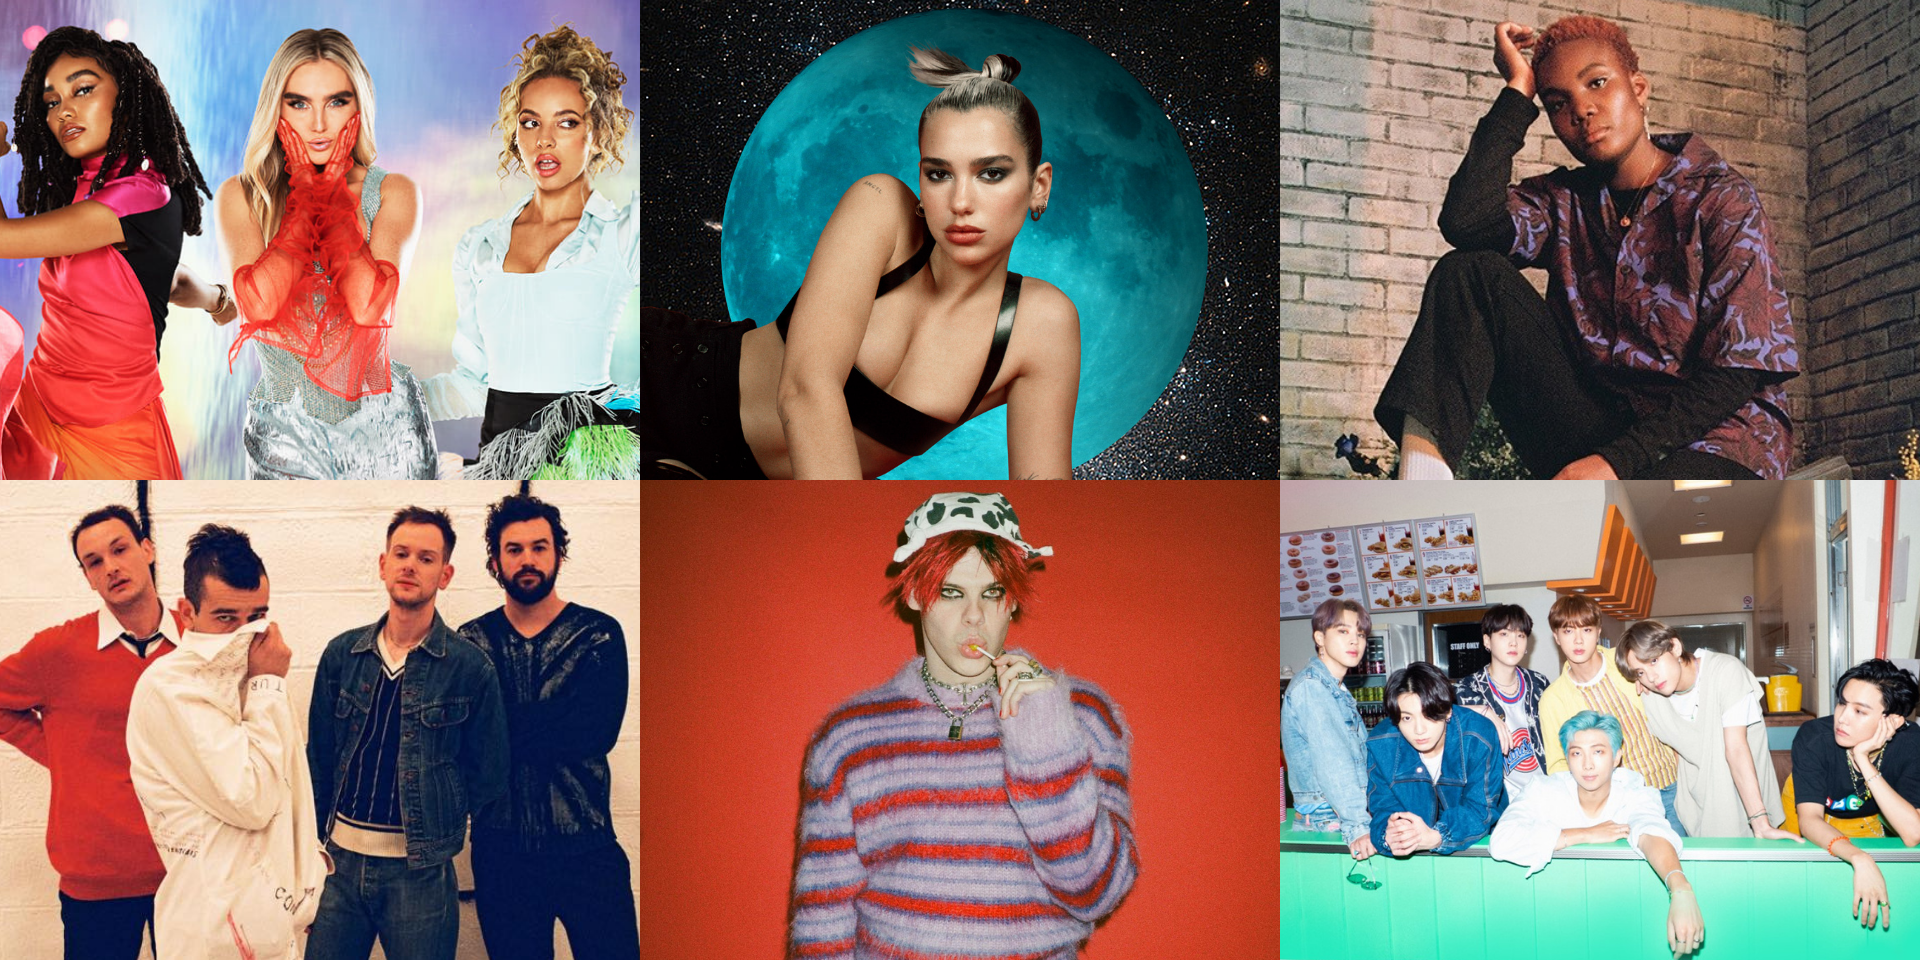 Here are the nominees of The BRIT Awards 2021 – Dua Lipa, Arlo Parks, The 1975, Little Mix, Yungblud, BTS, and more